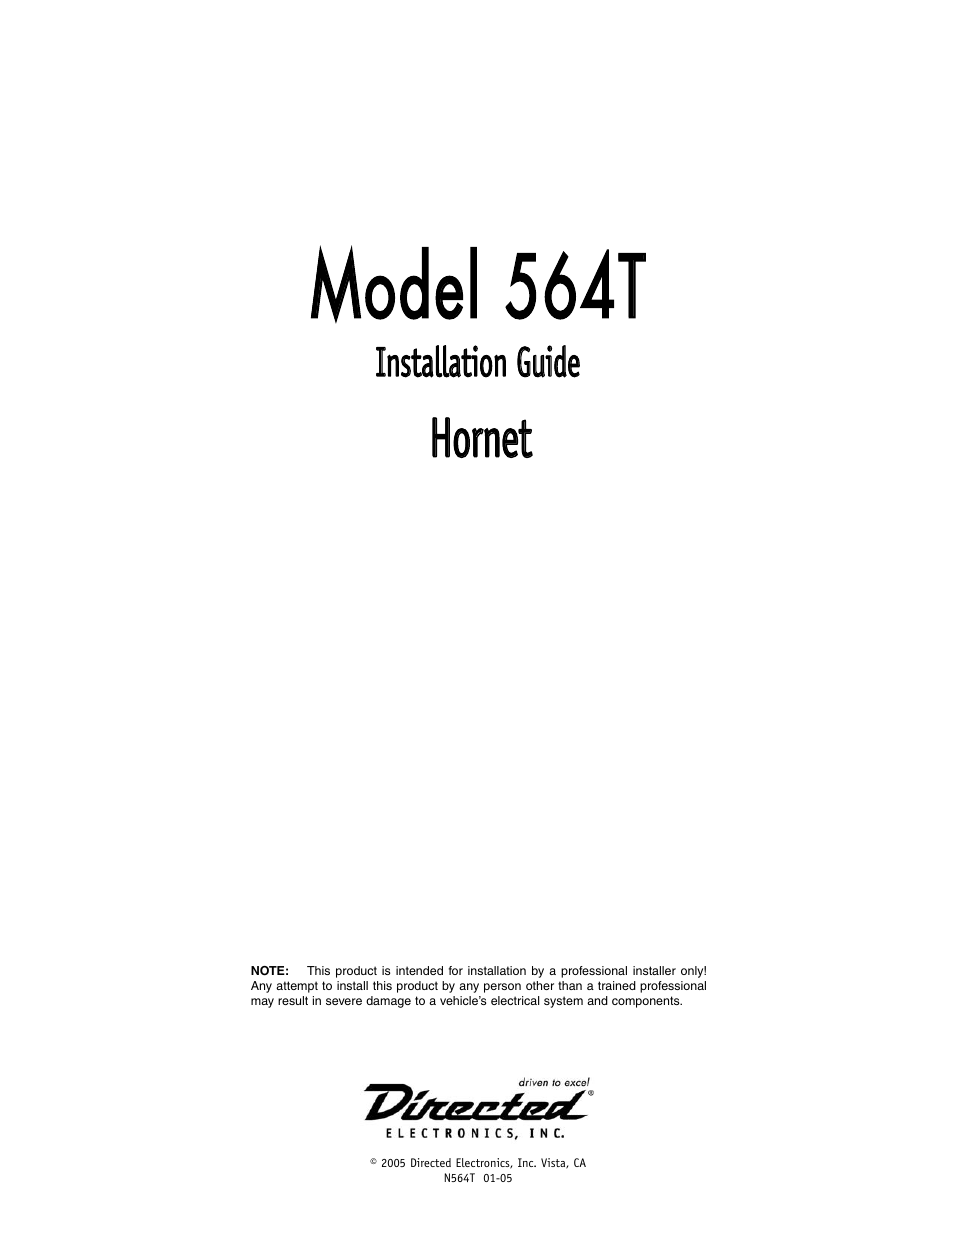 Directed-electronics hornet 564t download user guide for free.